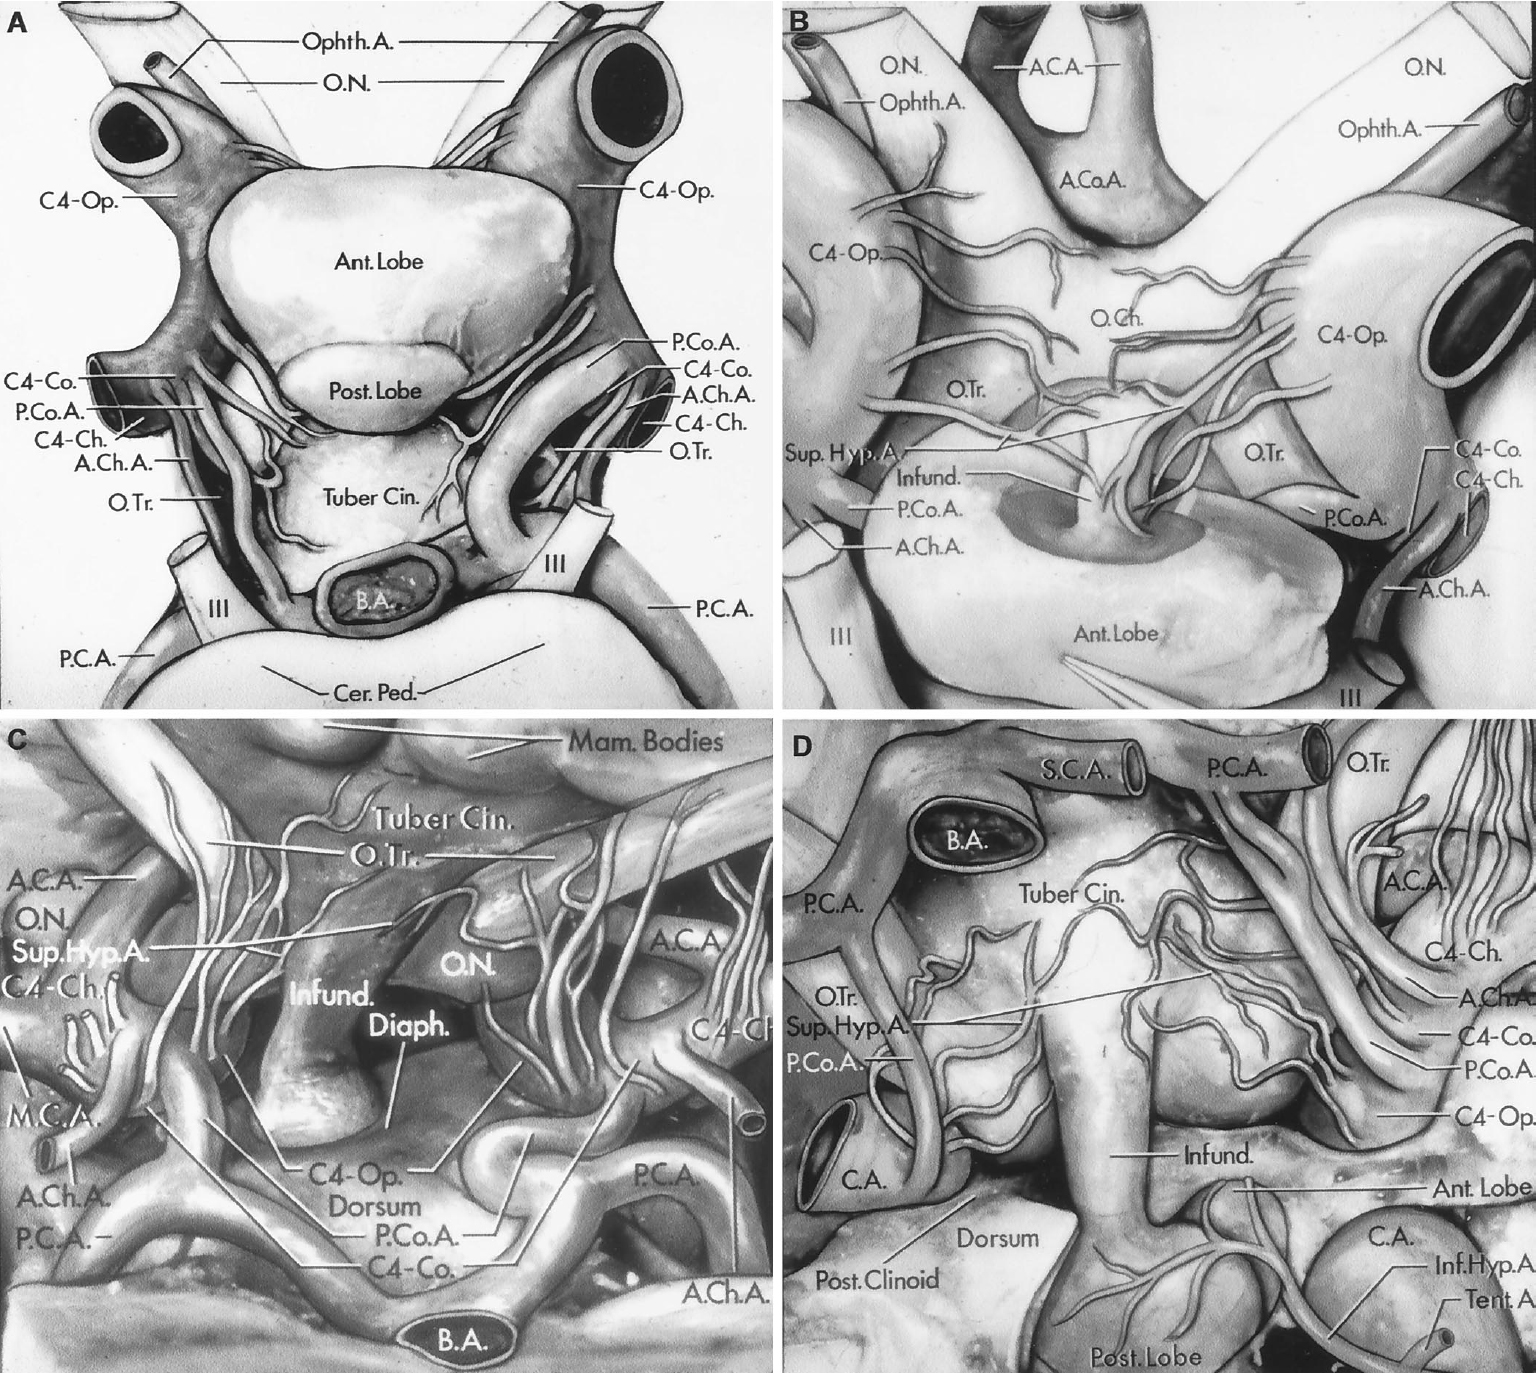 Figure 8.16. Relationships in the sellar and suprasellar areas. A, inferior view. The supraclinoid portion of the carotid artery is divided into three segments based on the site of origin of its major branches: the ophthalmic segment extends from the origin of the ophthalmic artery to the origin of the posterior communicating artery; the communicating segment extends from the origin of the posterior communicating artery to the origin of the anterior choroidal artery; and the choroidal segment extends from the origin of the anterior choroidal artery to the bifurcation of the carotid artery. The optic nerves are above the ophthalmic arteries. The optic chiasm and optic tracts are above the anterior and posterior lobes of the pituitary gland. The tuber cinereum is anterior to the apex of the basilar artery. The posterior cerebral arteries pass around the cerebral peduncles above the oculomotor nerves. The perforating branches arising from the ophthalmic segment pass to the anterior lobe, optic nerve, and chiasm and to the anterior part of the tuber cinereum. A single perforating branch arises from the communicating segment on each side and passes upward to the optic tract and the floor of the third ventricle. B, the pituitary gland has been reflected backward to show the superior hypophyseal arteries passing from the ophthalmic segments to the infundibulum. The anterior cerebral and the anterior communicating arteries pass above the optic chiasm. C, posterior view. The basilar artery and brainstem have been divided and the floor of the third ventricle elevated to provide this posterior view of the arteries in the suprasellar area. The tuber cinereum and mamillary bodies are exposed between the optic tracts. D, the right half of the dorsum and the right posterior clinoid process have been removed to expose the anterior and posterior lobes of the pituitary gland. The basilar, posterior cerebral, and superior cerebellar arteries have been elevated to expose the pituitary 